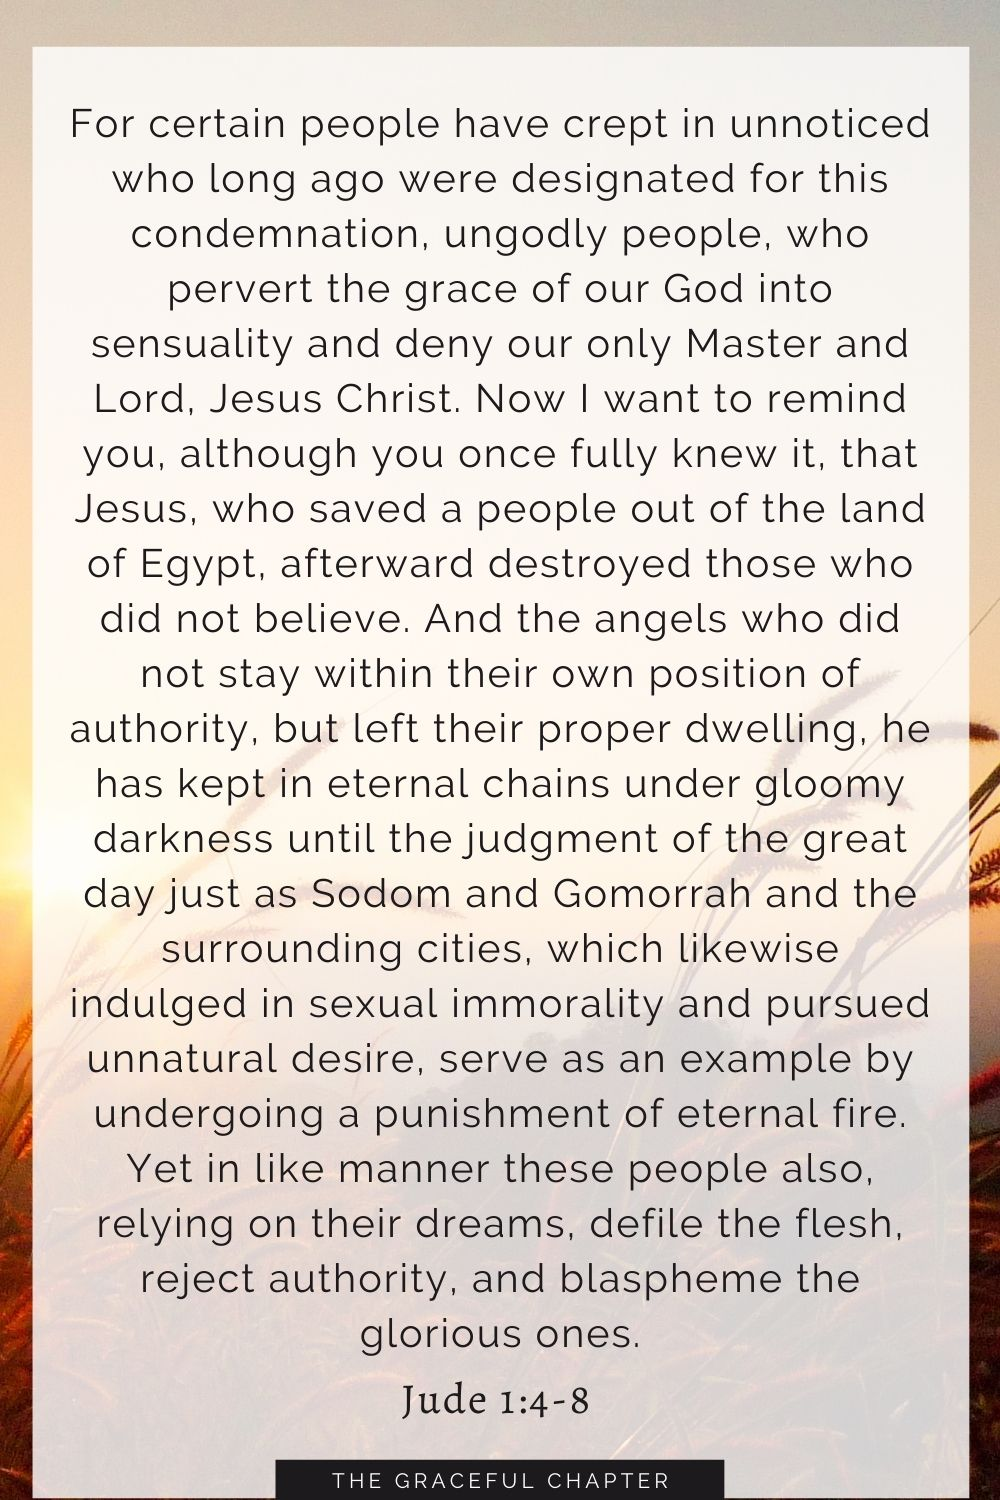 For certain people have crept in unnoticed who long ago were designated for this condemnation, ungodly people, who pervert the grace of our God into sensuality and deny our only Master and Lord, Jesus Christ. Now I want to remind you, although you once fully knew it, that Jesus, who saved a people out of the land of Egypt, afterward destroyed those who did not believe. And the angels who did not stay within their own position of authority, but left their proper dwelling, he has kept in eternal chains under gloomy darkness until the judgment of the great day just as Sodom and Gomorrah and the surrounding cities, which likewise indulged in sexual immorality and pursued unnatural desire, serve as an example by undergoing a punishment of eternal fire. Yet in like manner these people also, relying on their dreams, defile the flesh, reject authority, and blaspheme the glorious ones. Jude 1:4-8